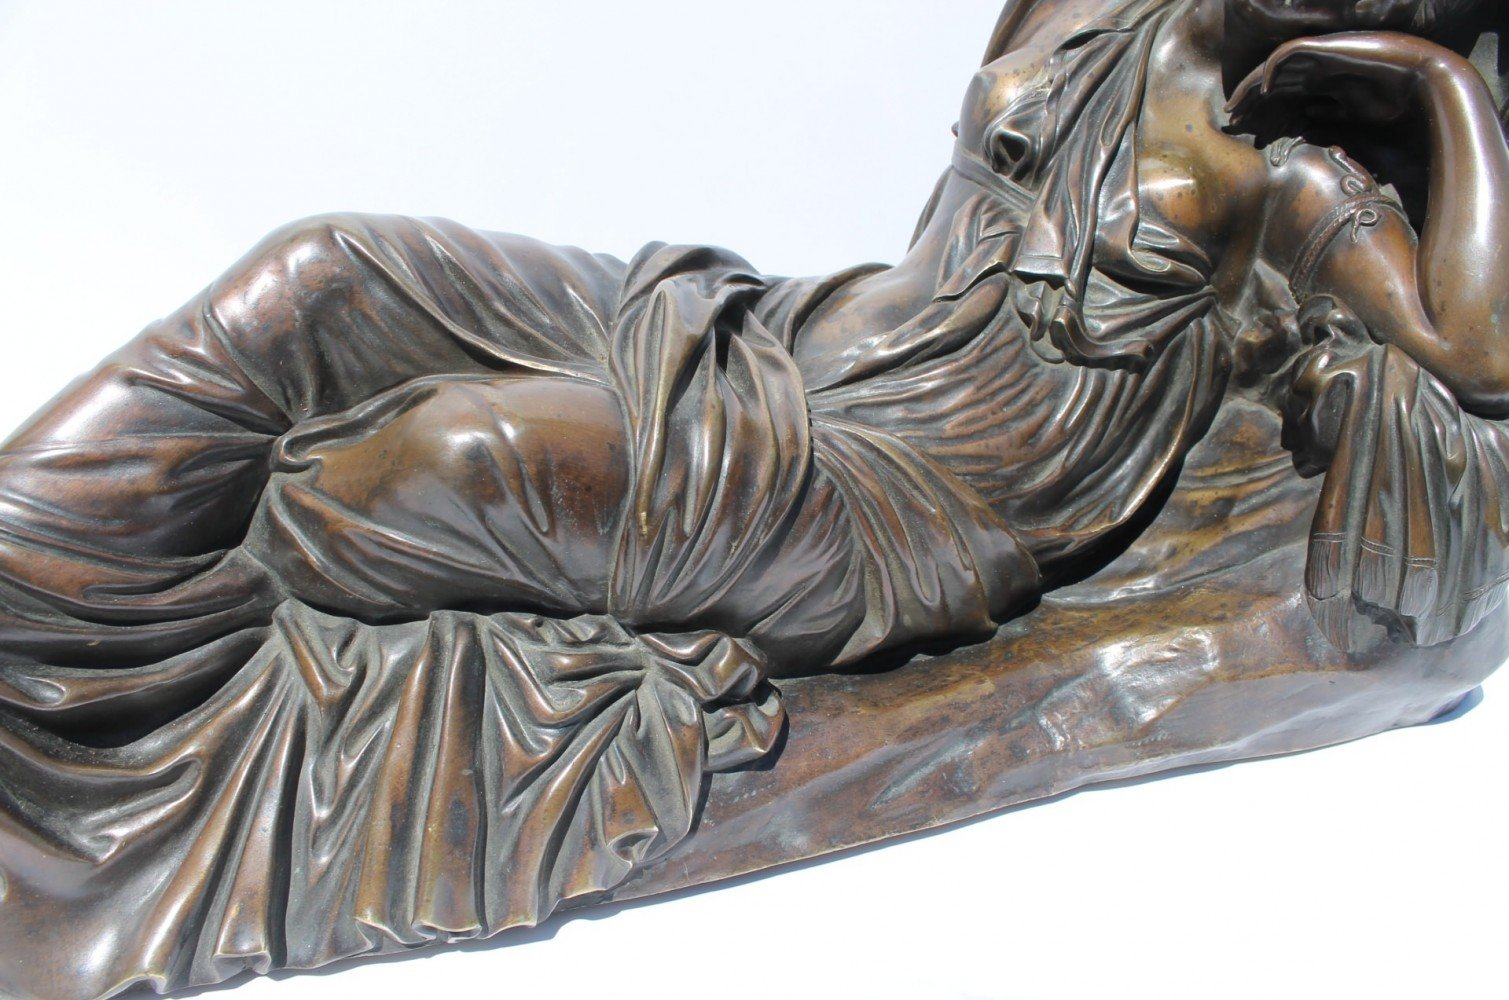 The Sleeping Ariadne, 18th century bronze after the antique